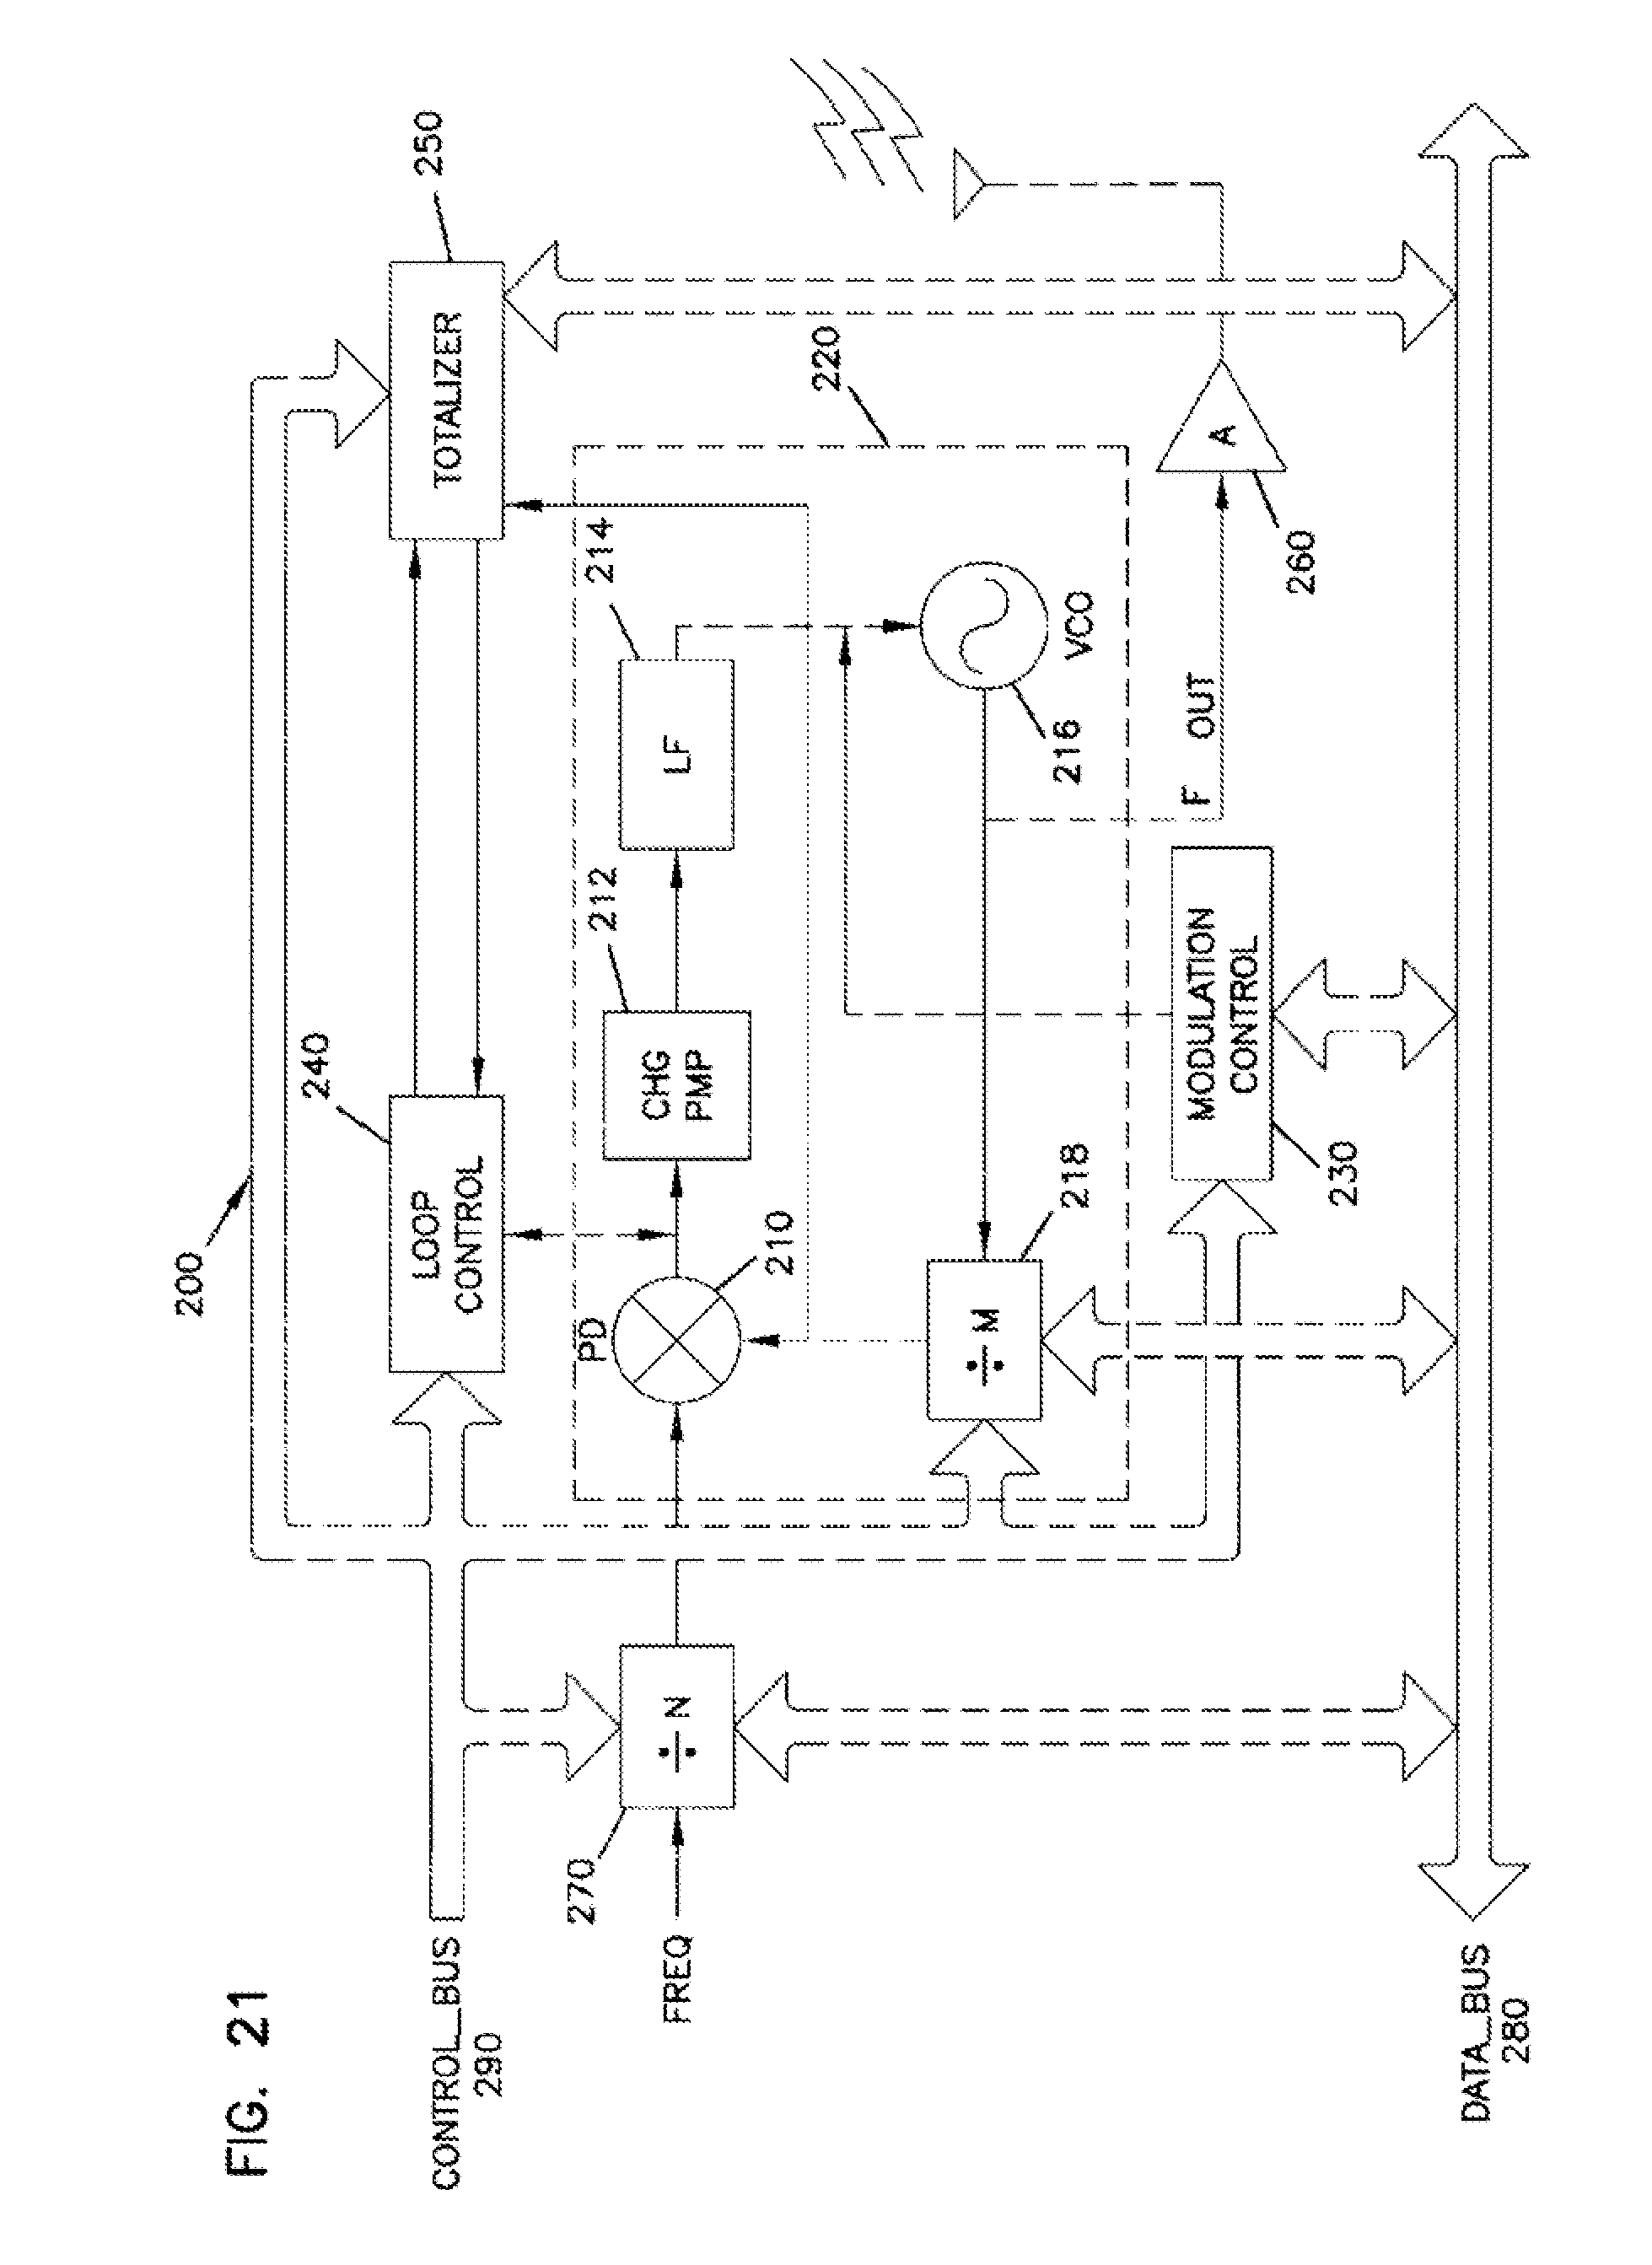 Us20070244380a1 Analyte Monitoring Device And Methods Of Use Icu Kw Wiring Diagram Google Patents